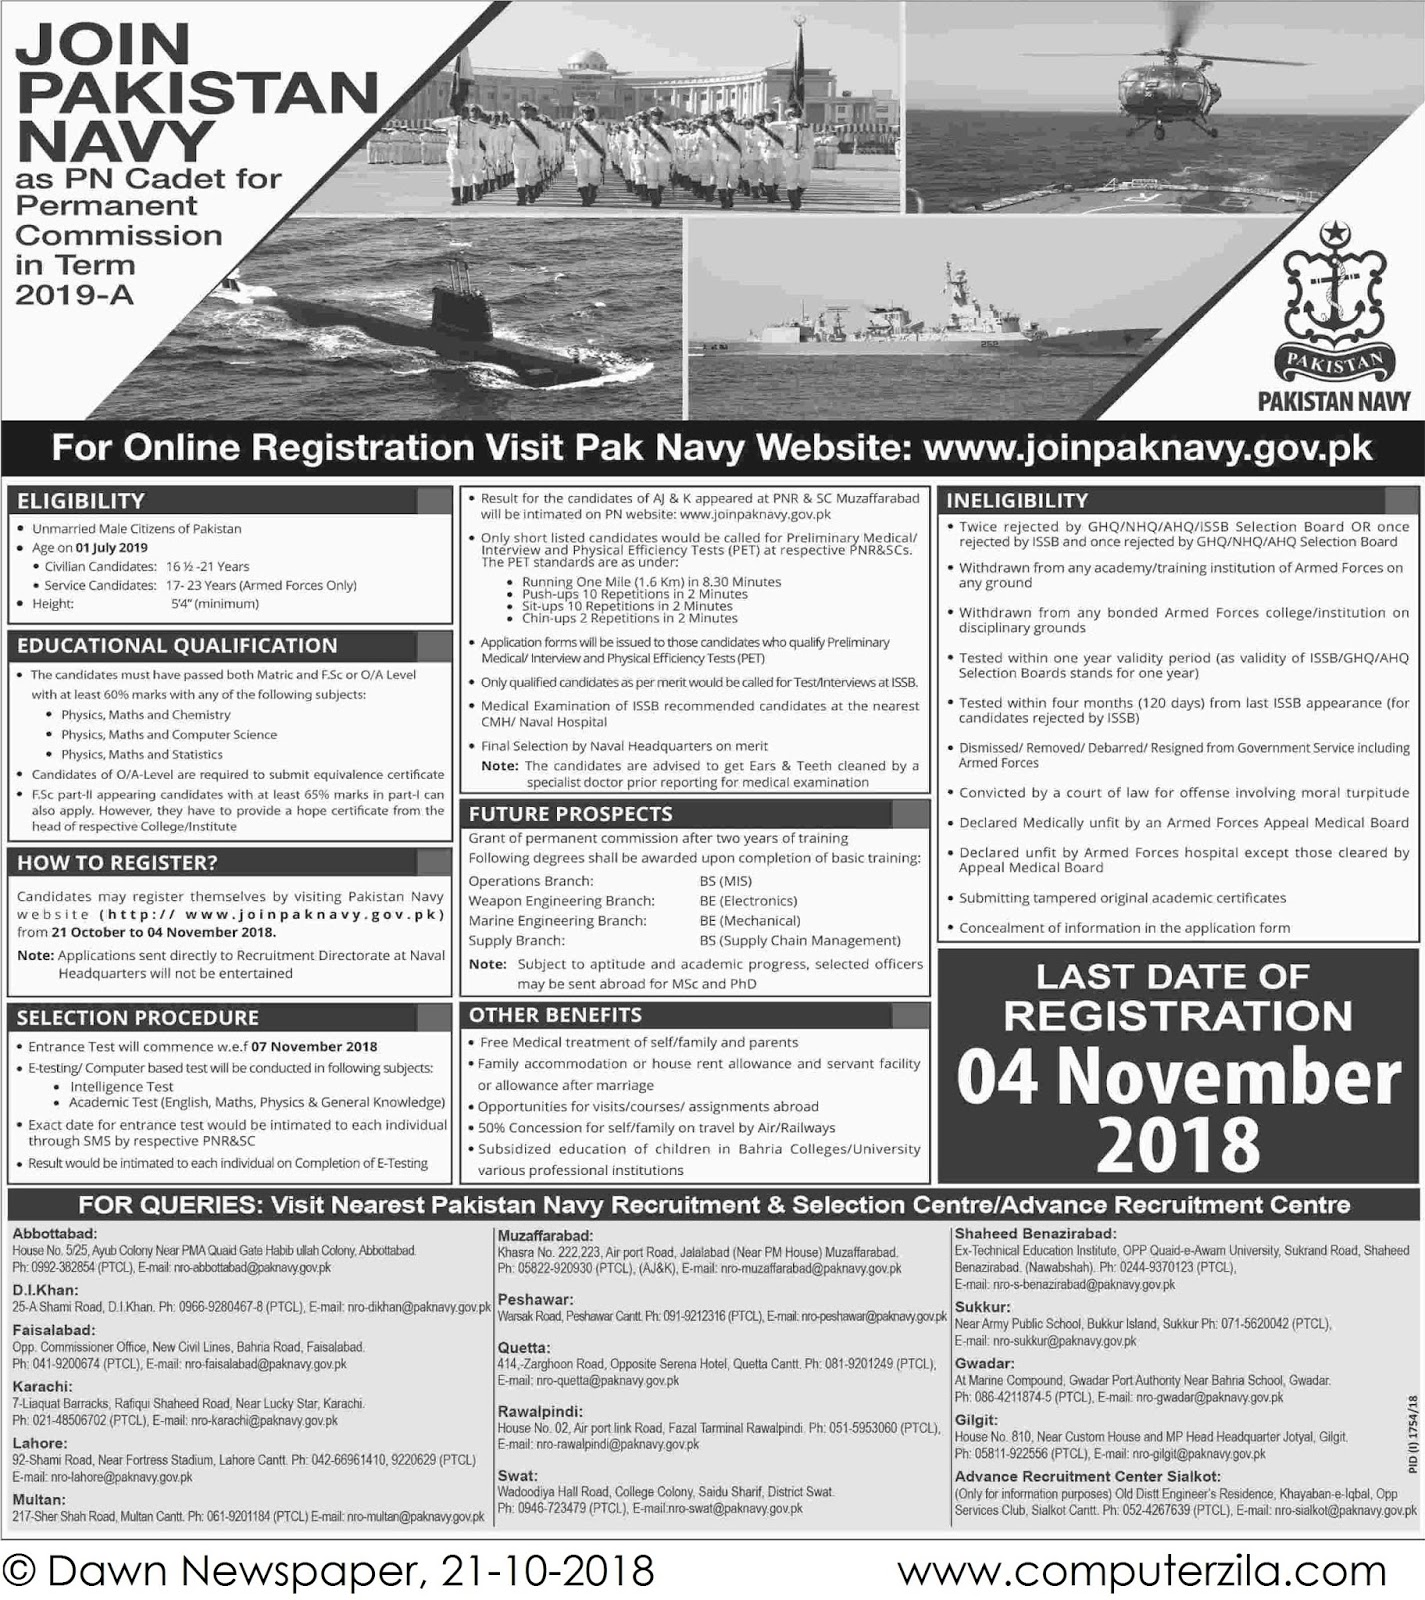 PN cadet for Permanent Commission at Pakistan Navy